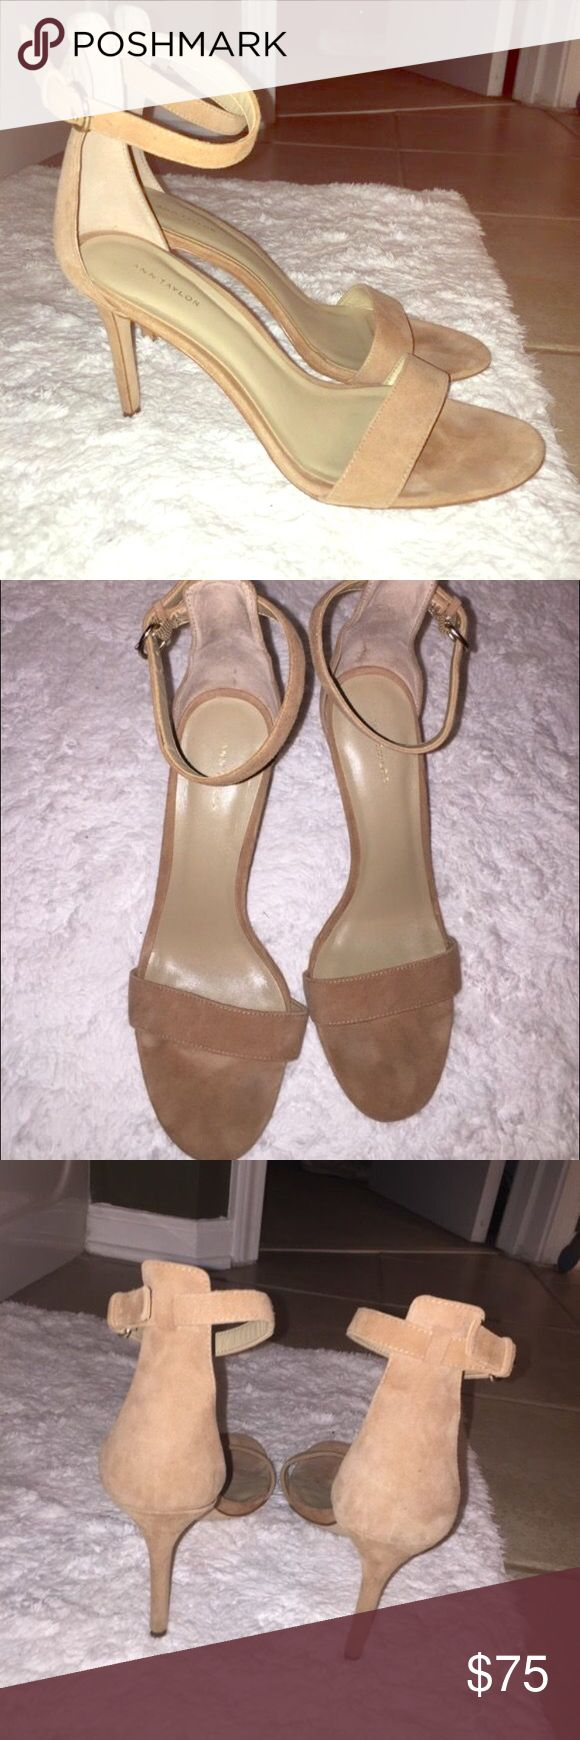 Ann Taylor 9.5 Suede Sandals Nude suede ankle strap heels. Worn 4-5 times but they're too big Ann Taylor Shoes Heels